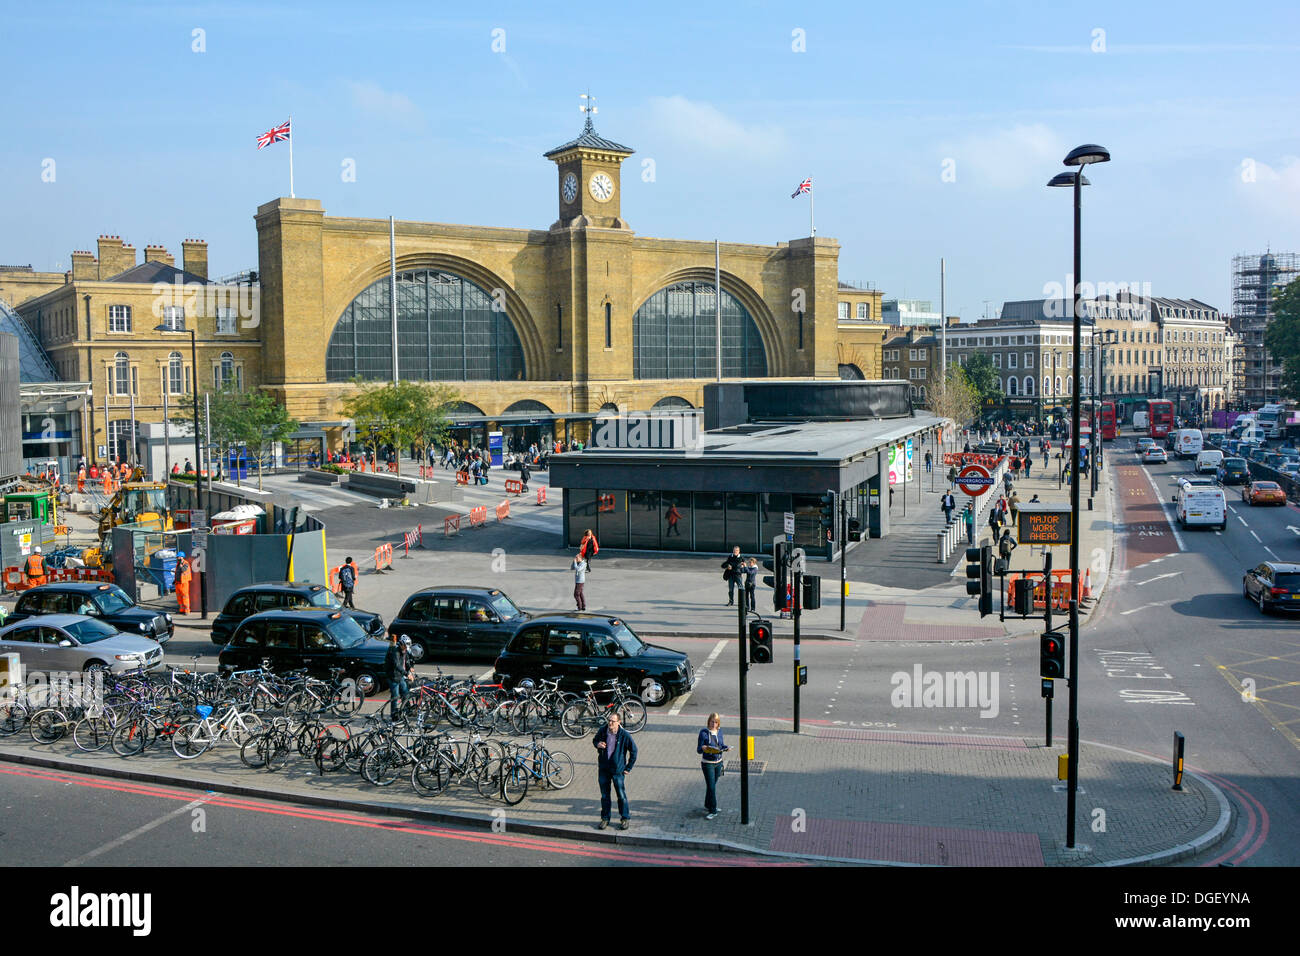 Remodeled Kings Cross Square and railway station facade part of the regeneration of King's Cross station - Stock Image